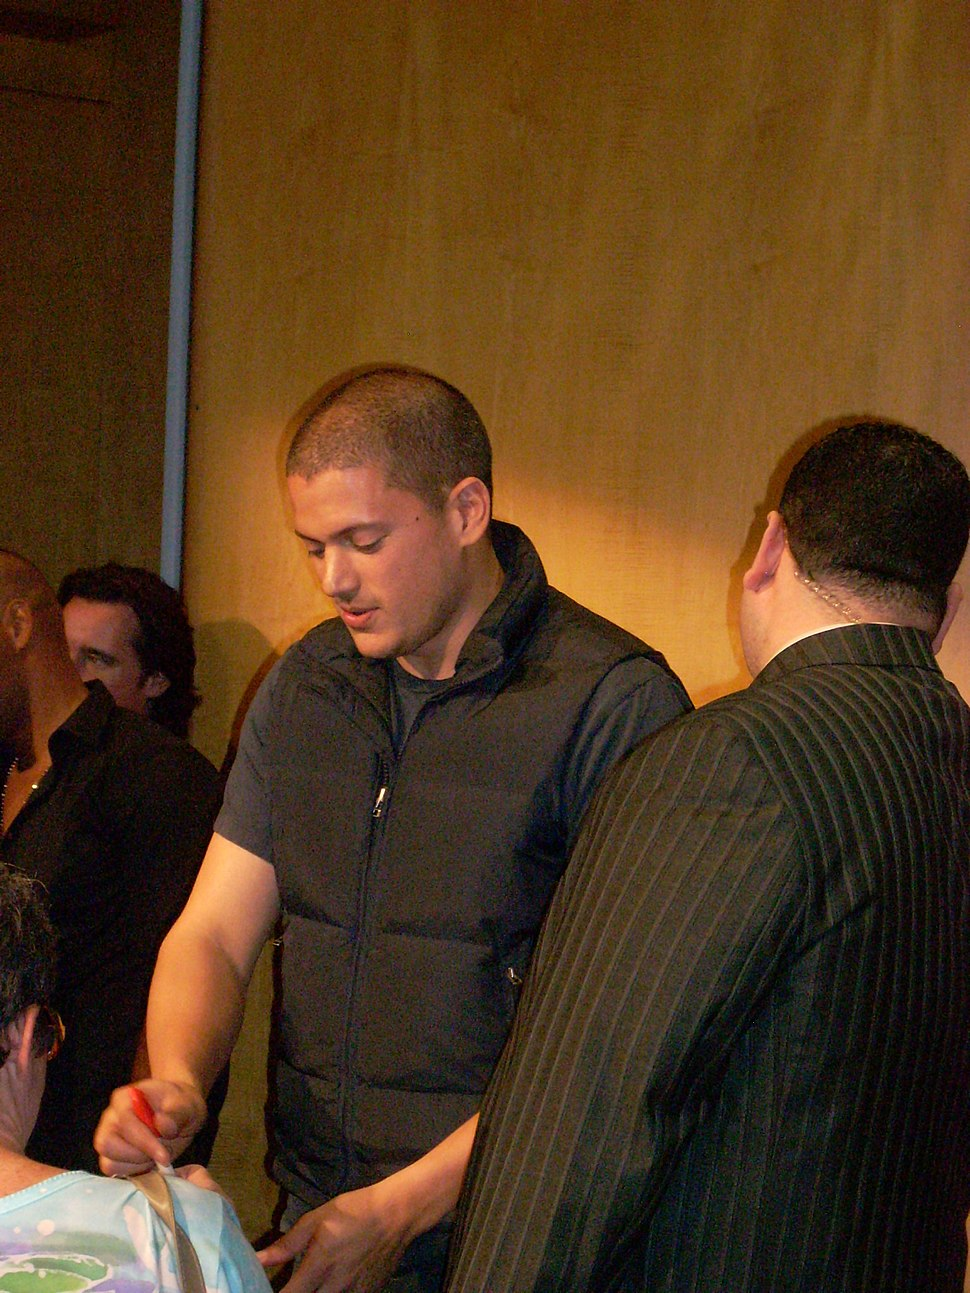 Wentworth Miller signing autographs